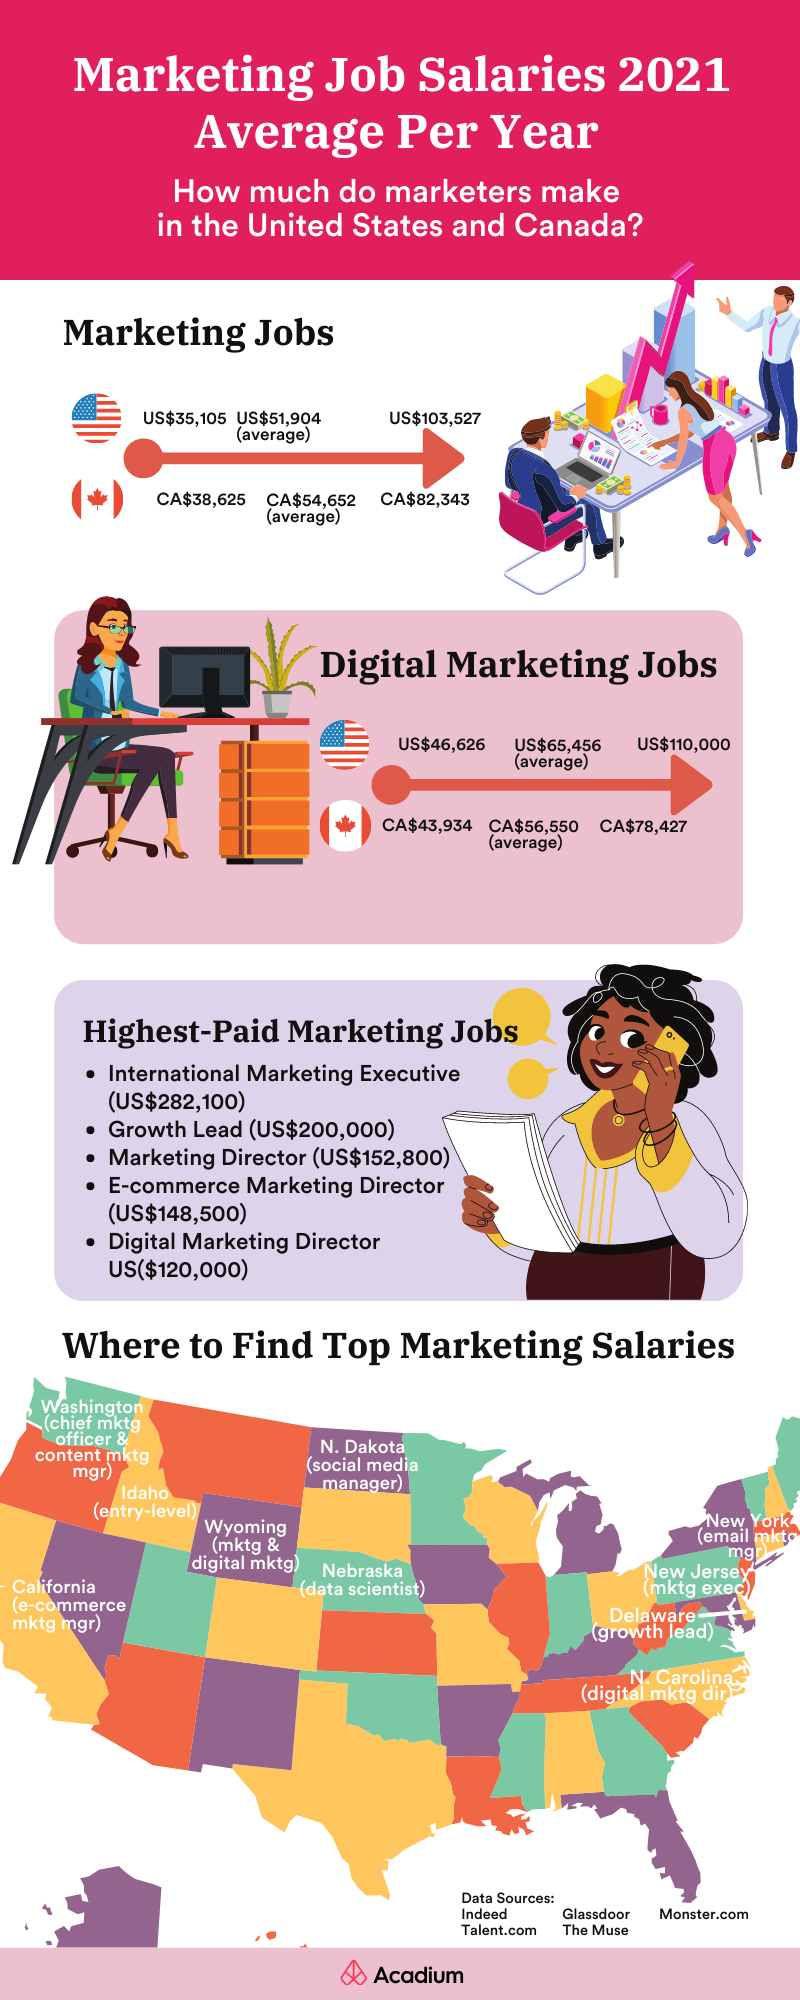 marketing job salaries - where to find top marketing salaries in the united states